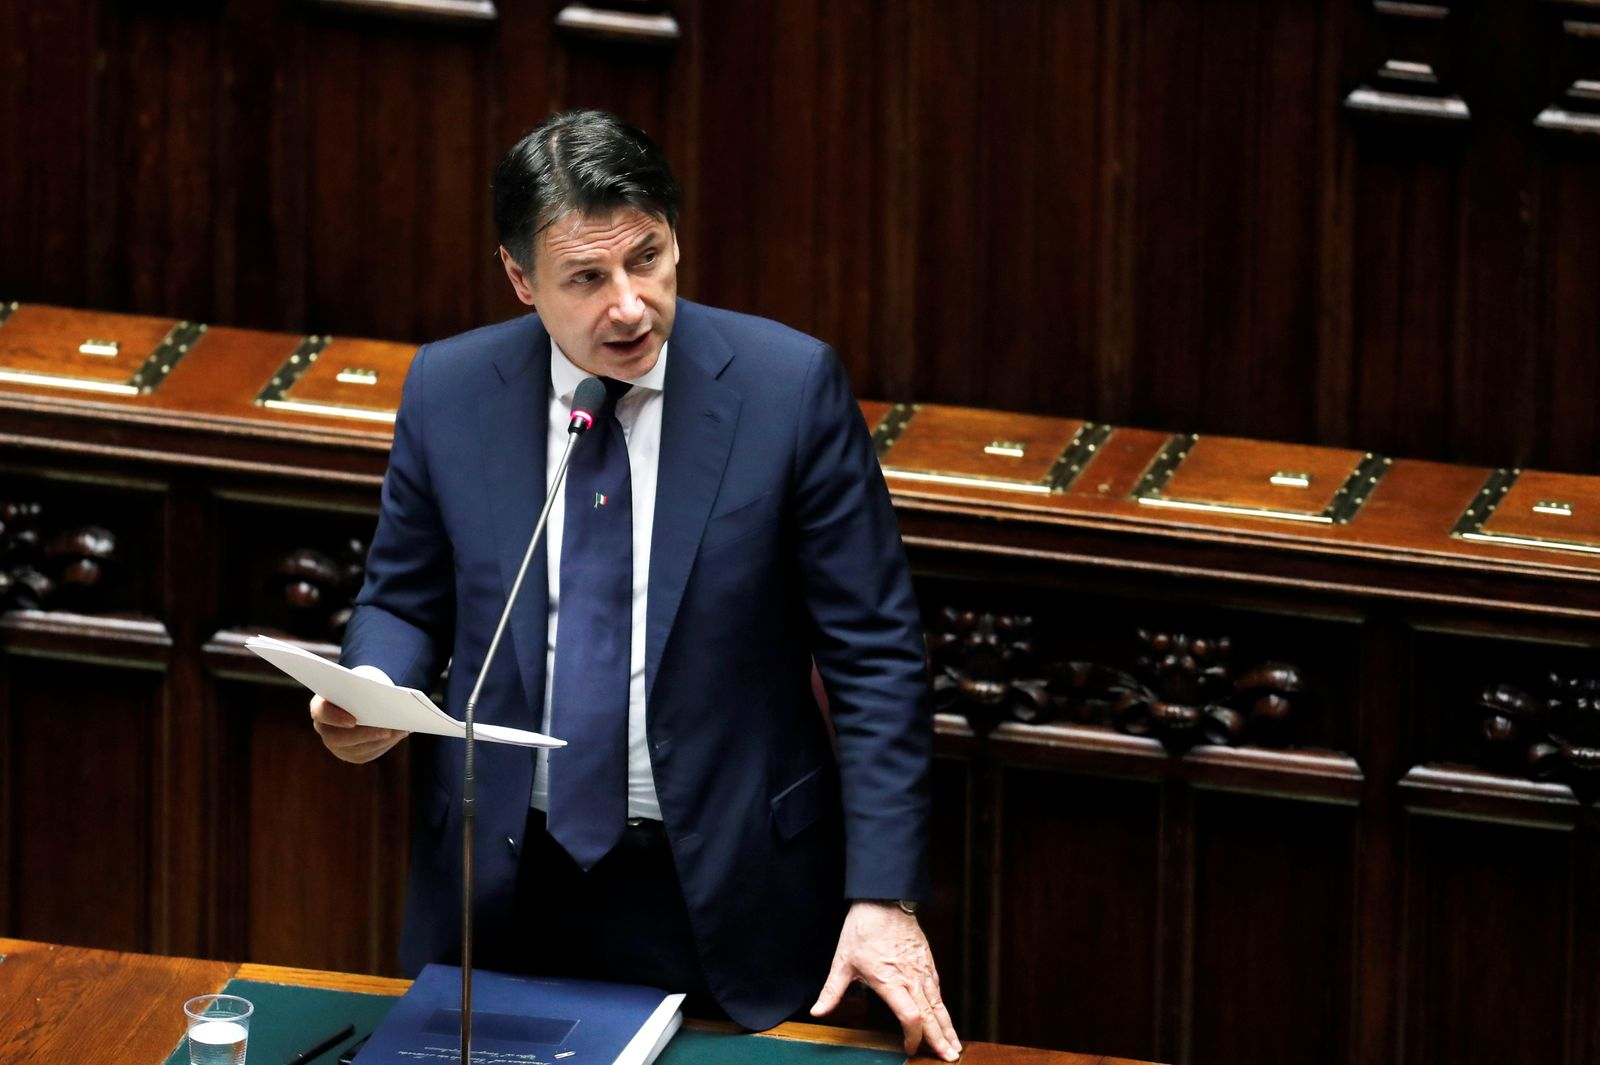 Italian Prime Minister Giuseppe Conte addresses the lower house of parliament on the coronavirus disease (COVID-19) in Rome